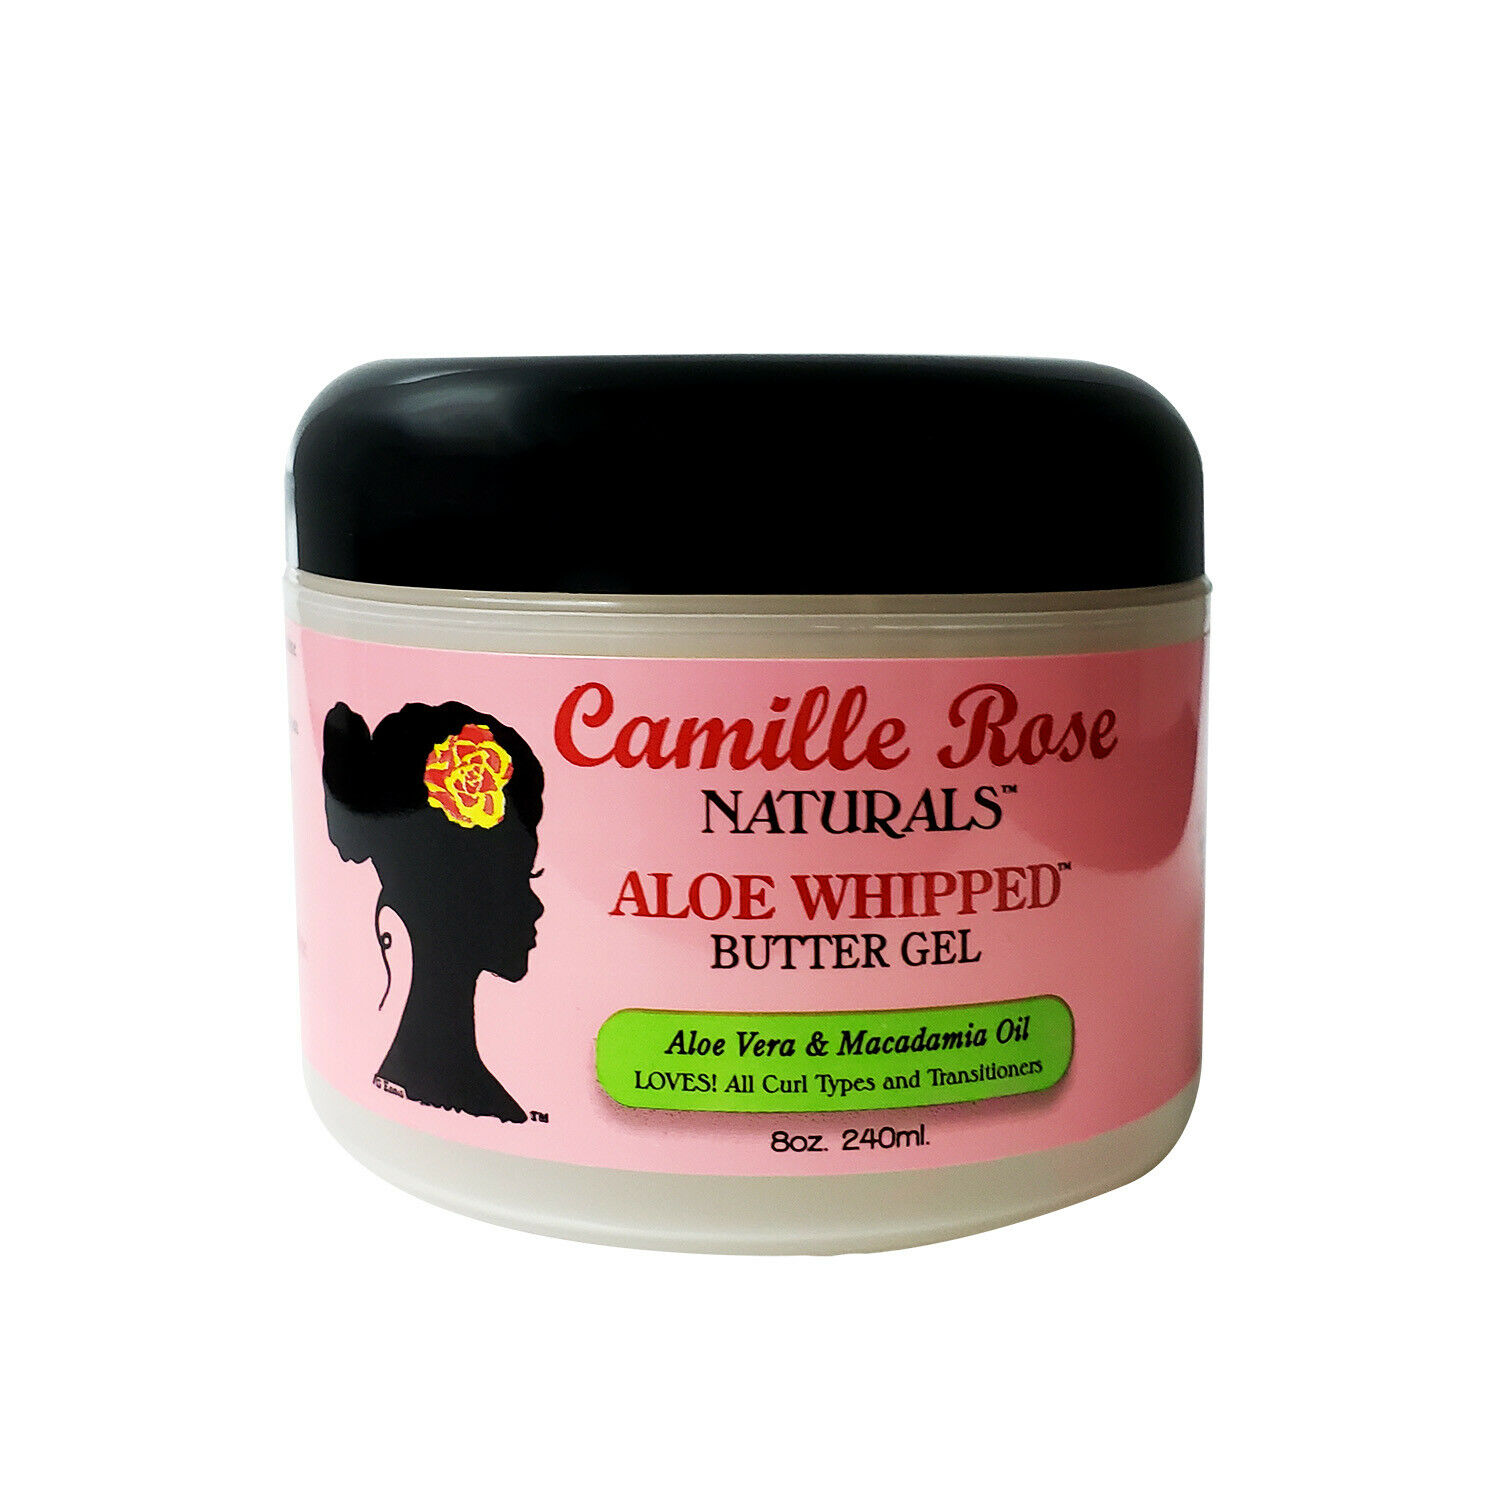 Camille Rose Naturals Aloe Whipped Butter Gel – 8 Oz. Hair Care & Styling